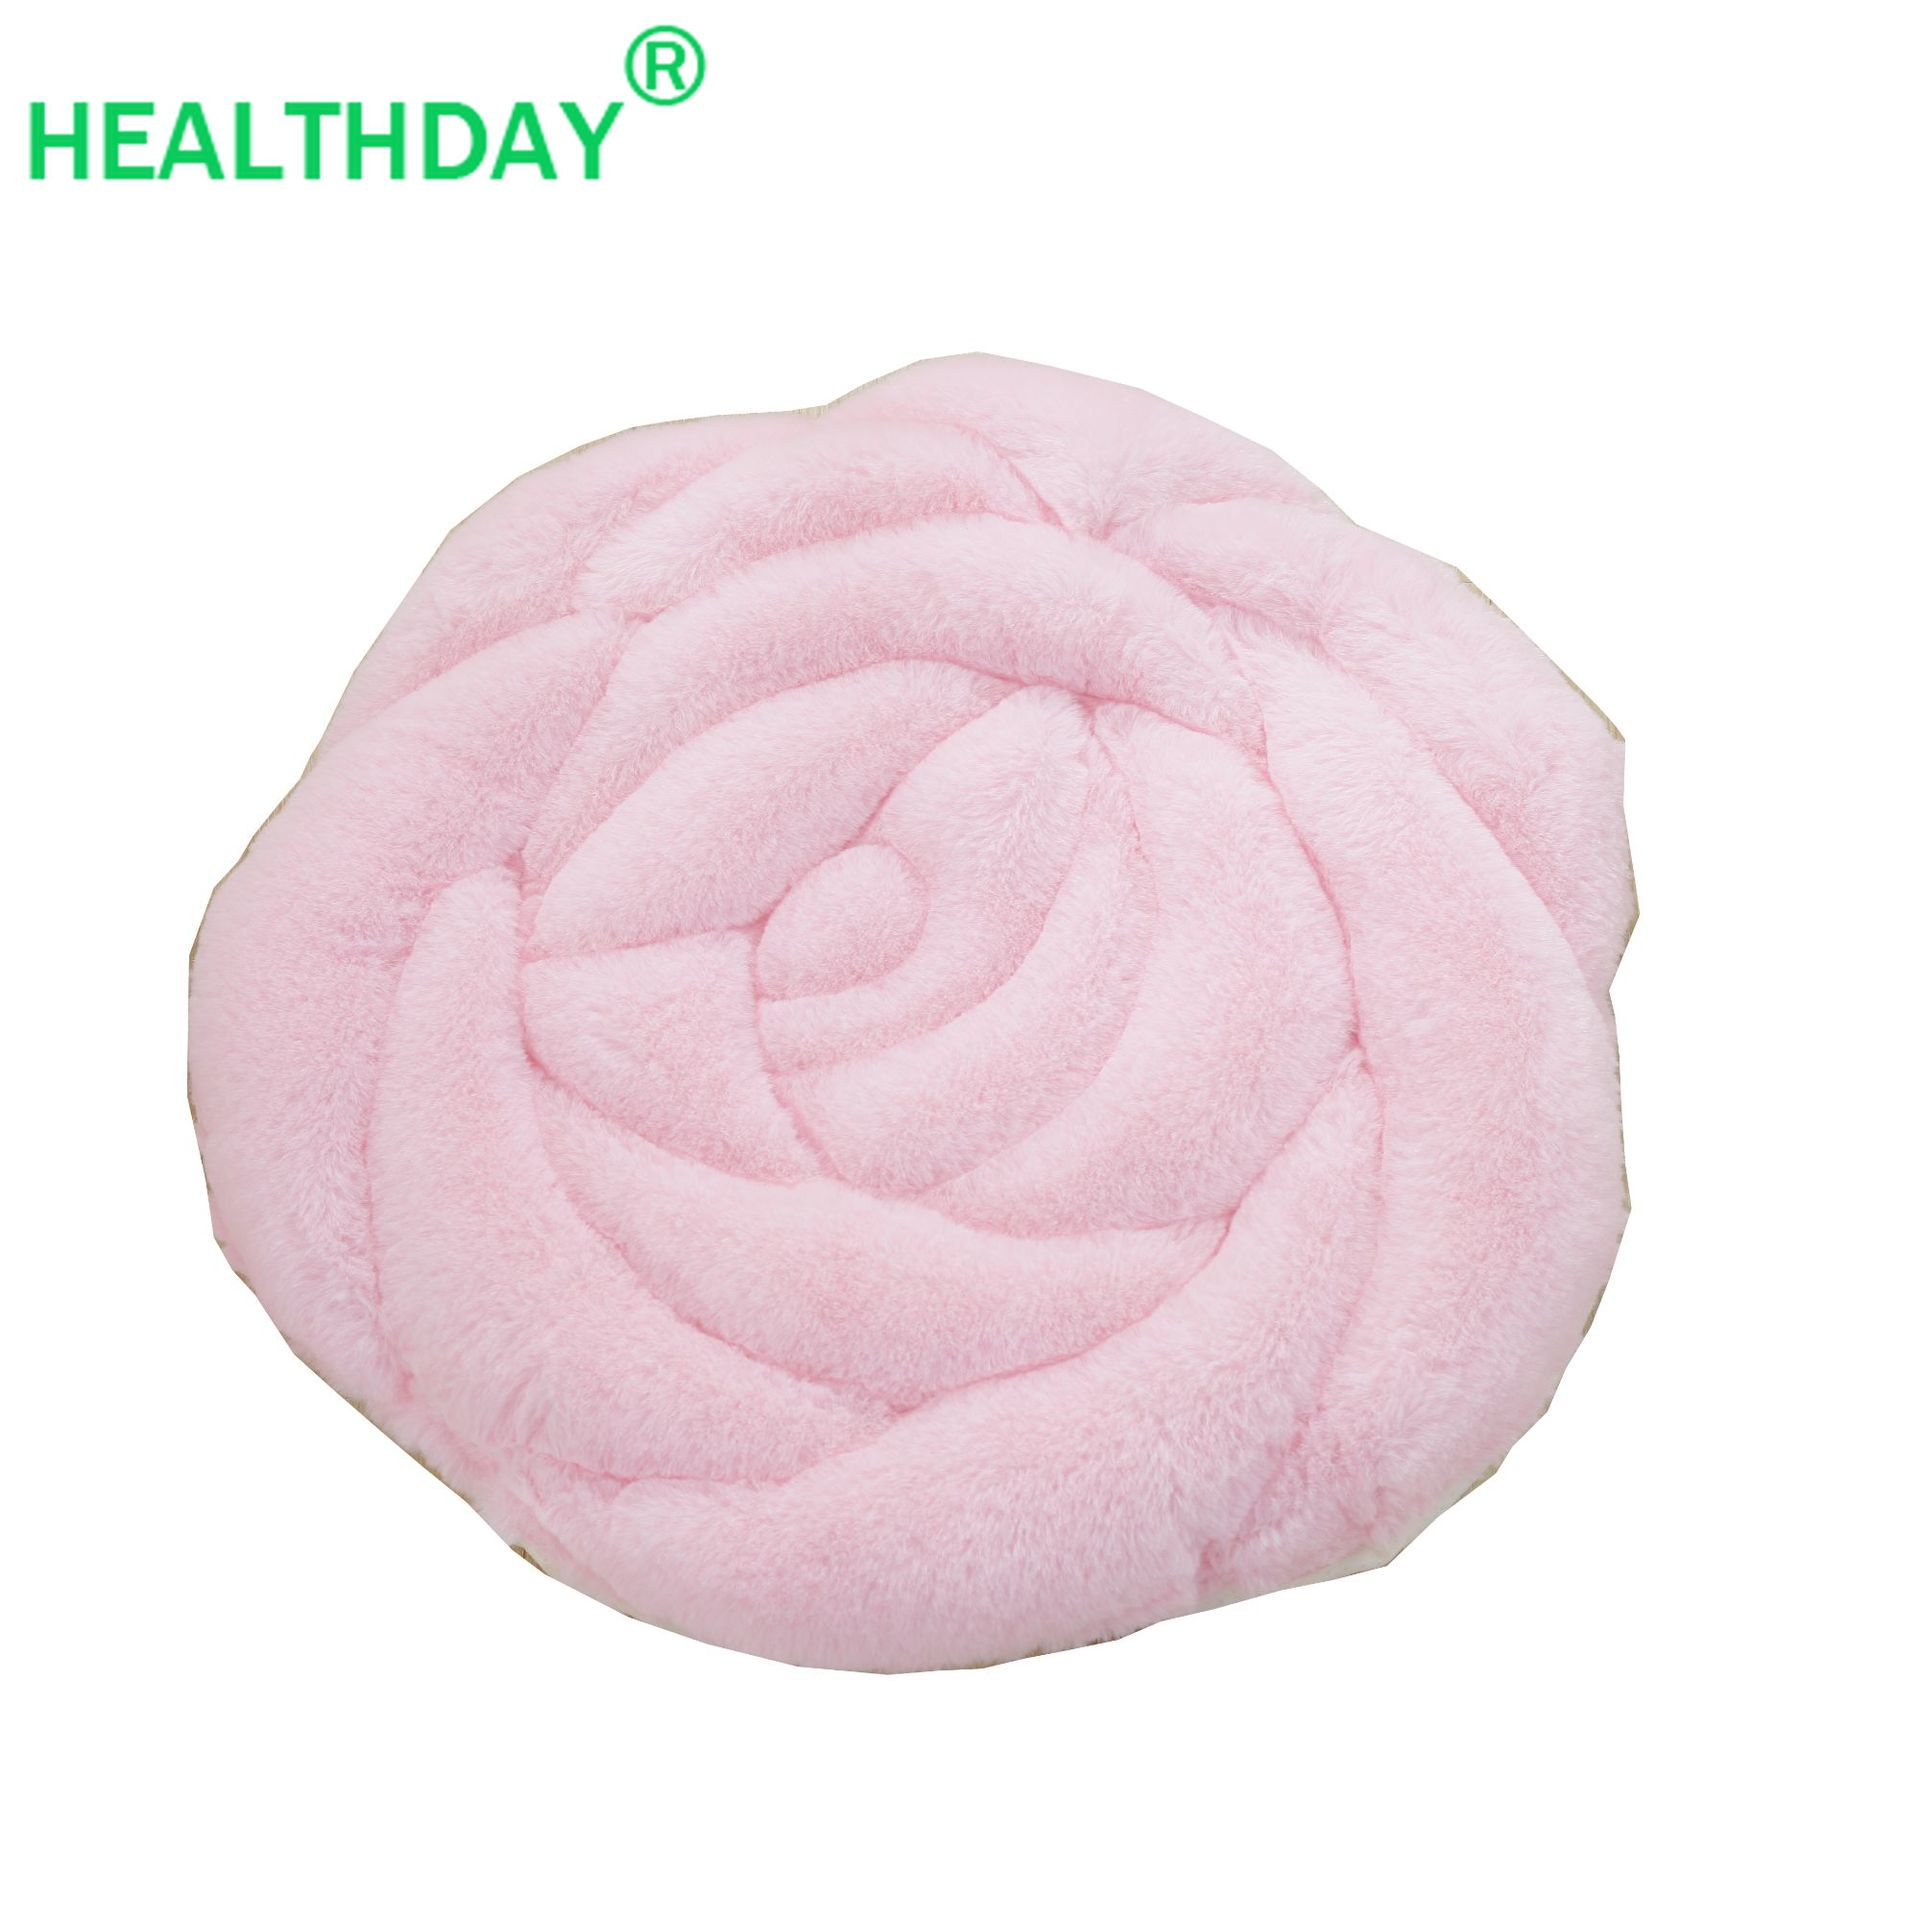 Winter Seat Cushion PP Cotton Filling Rose Style Care For The Buttocks  Christmas Gift For Girlfriend Wife Warm Hip Pad Pillow